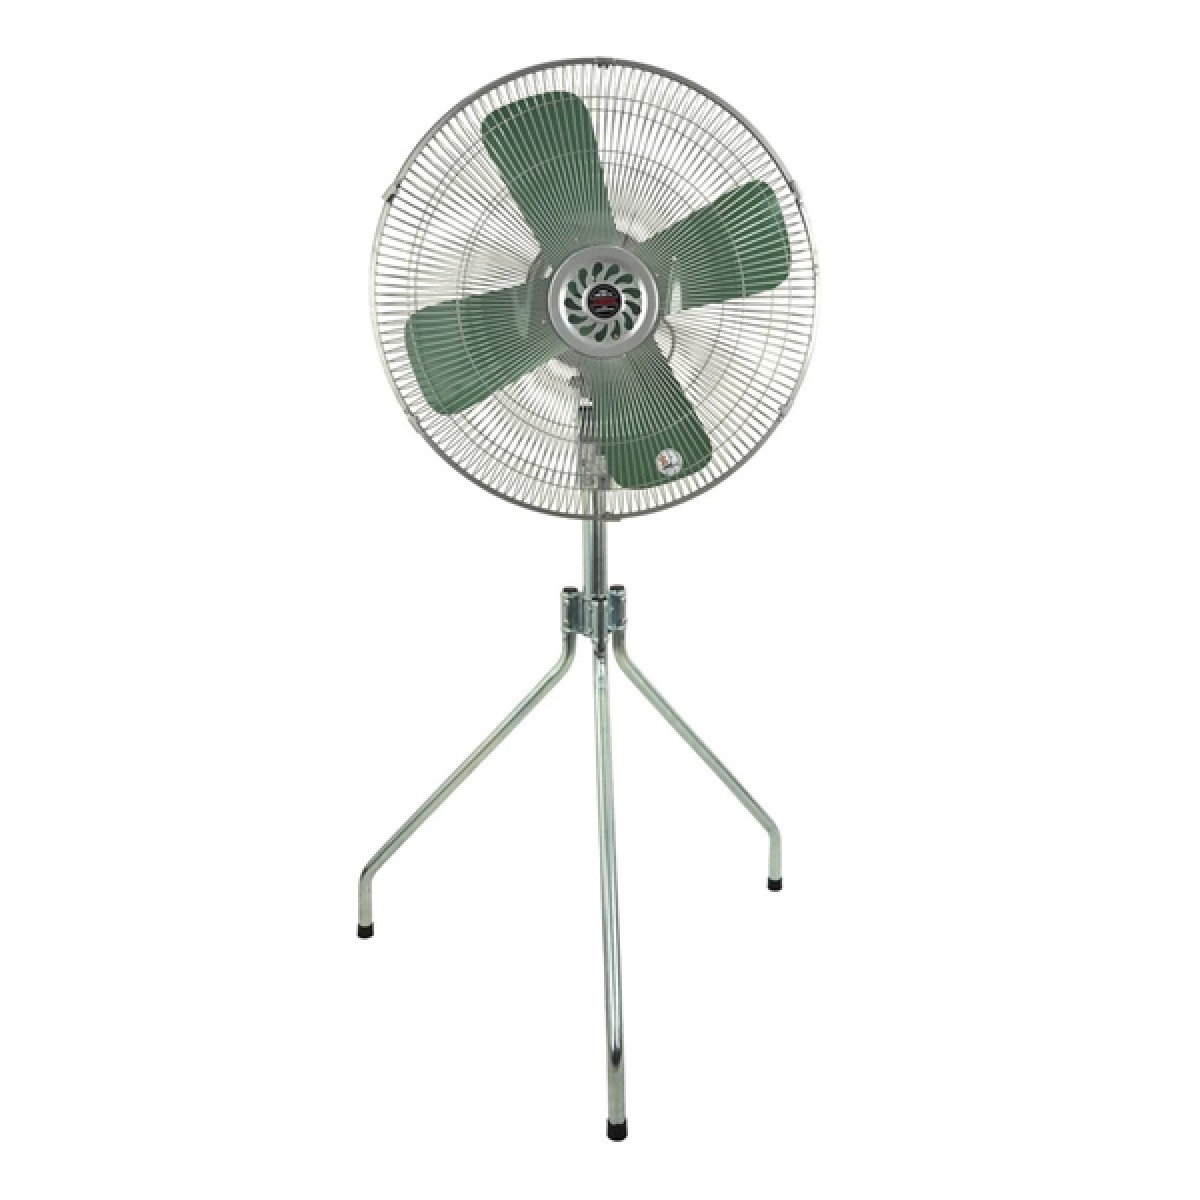 union ugtf 24 isf 24 industrial stand fan robinsons